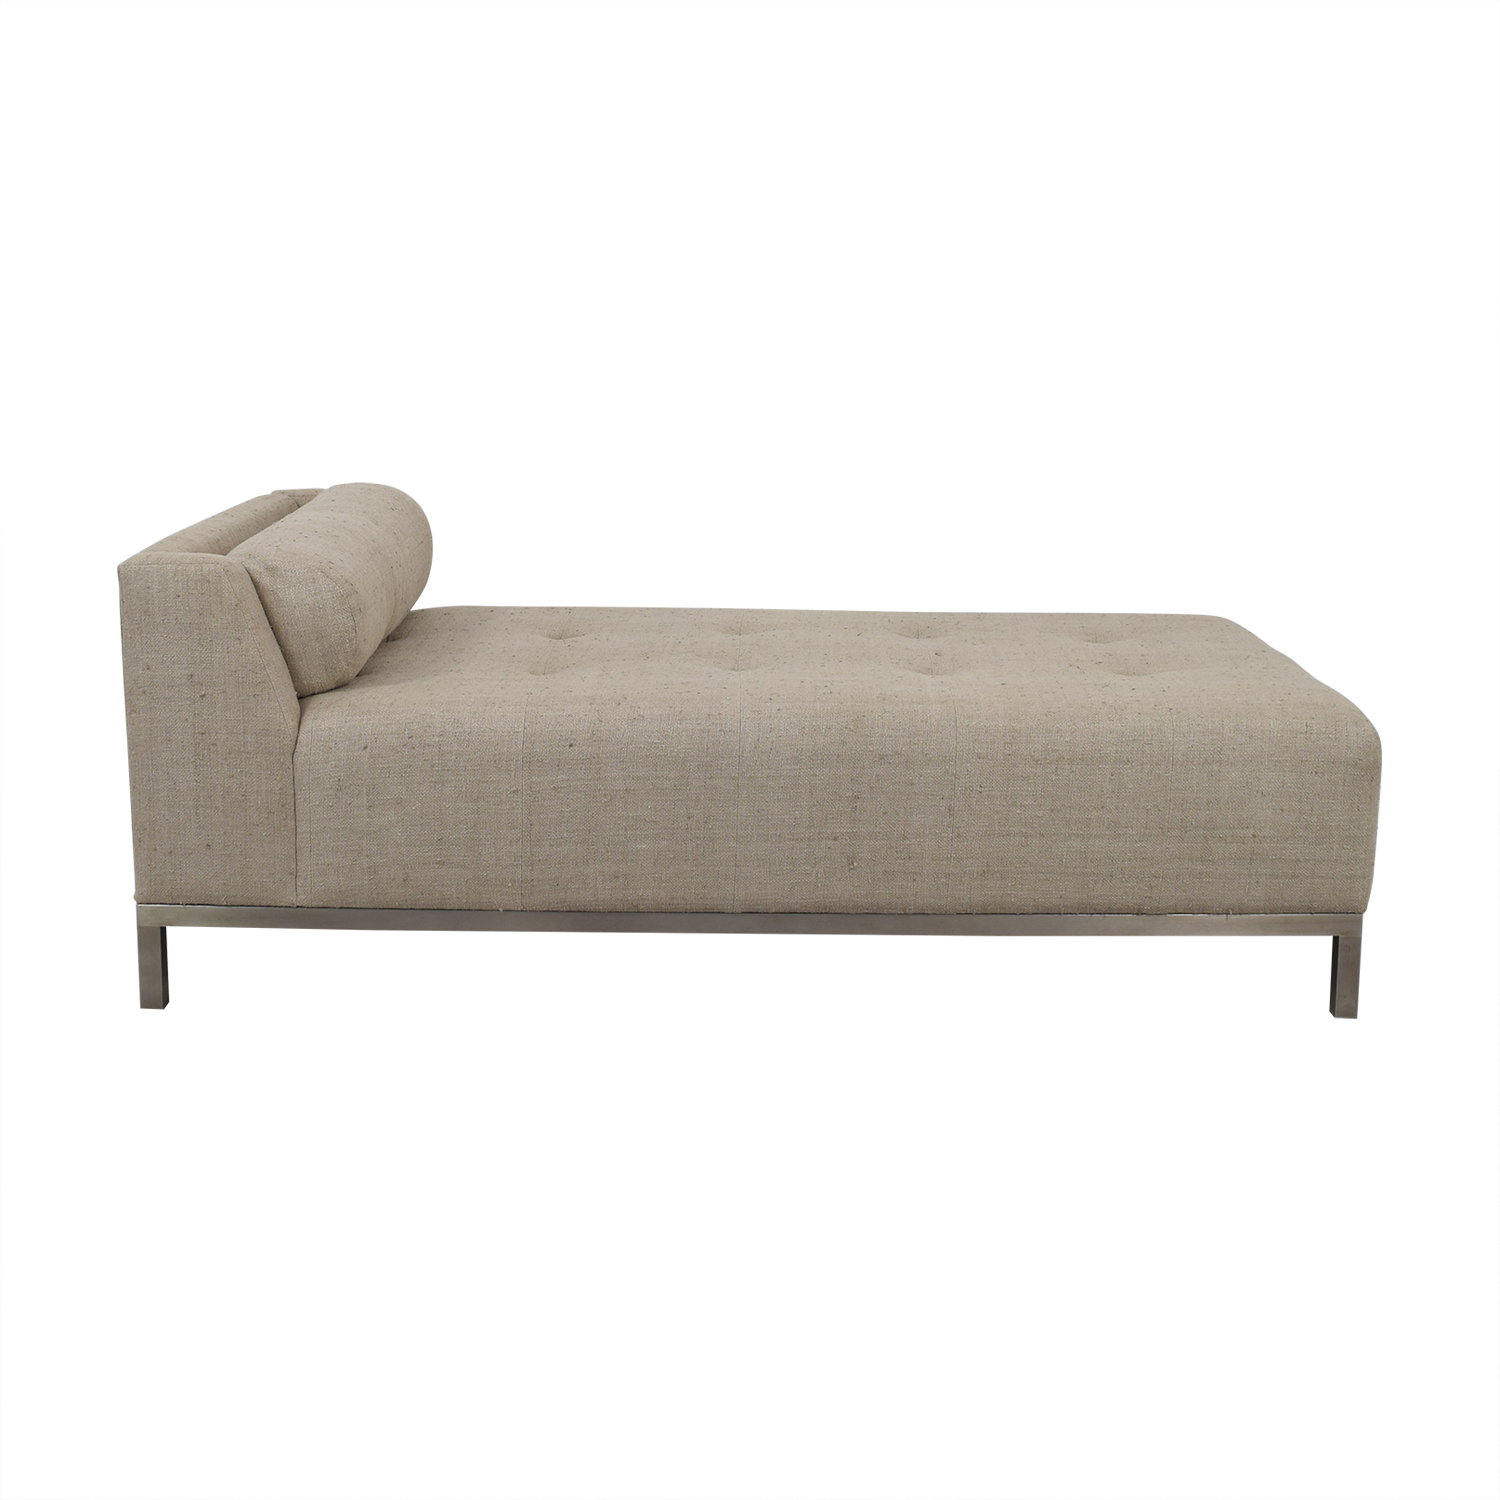 shop Furniture Masters Furniture Masters Gray Tufted Chaise online